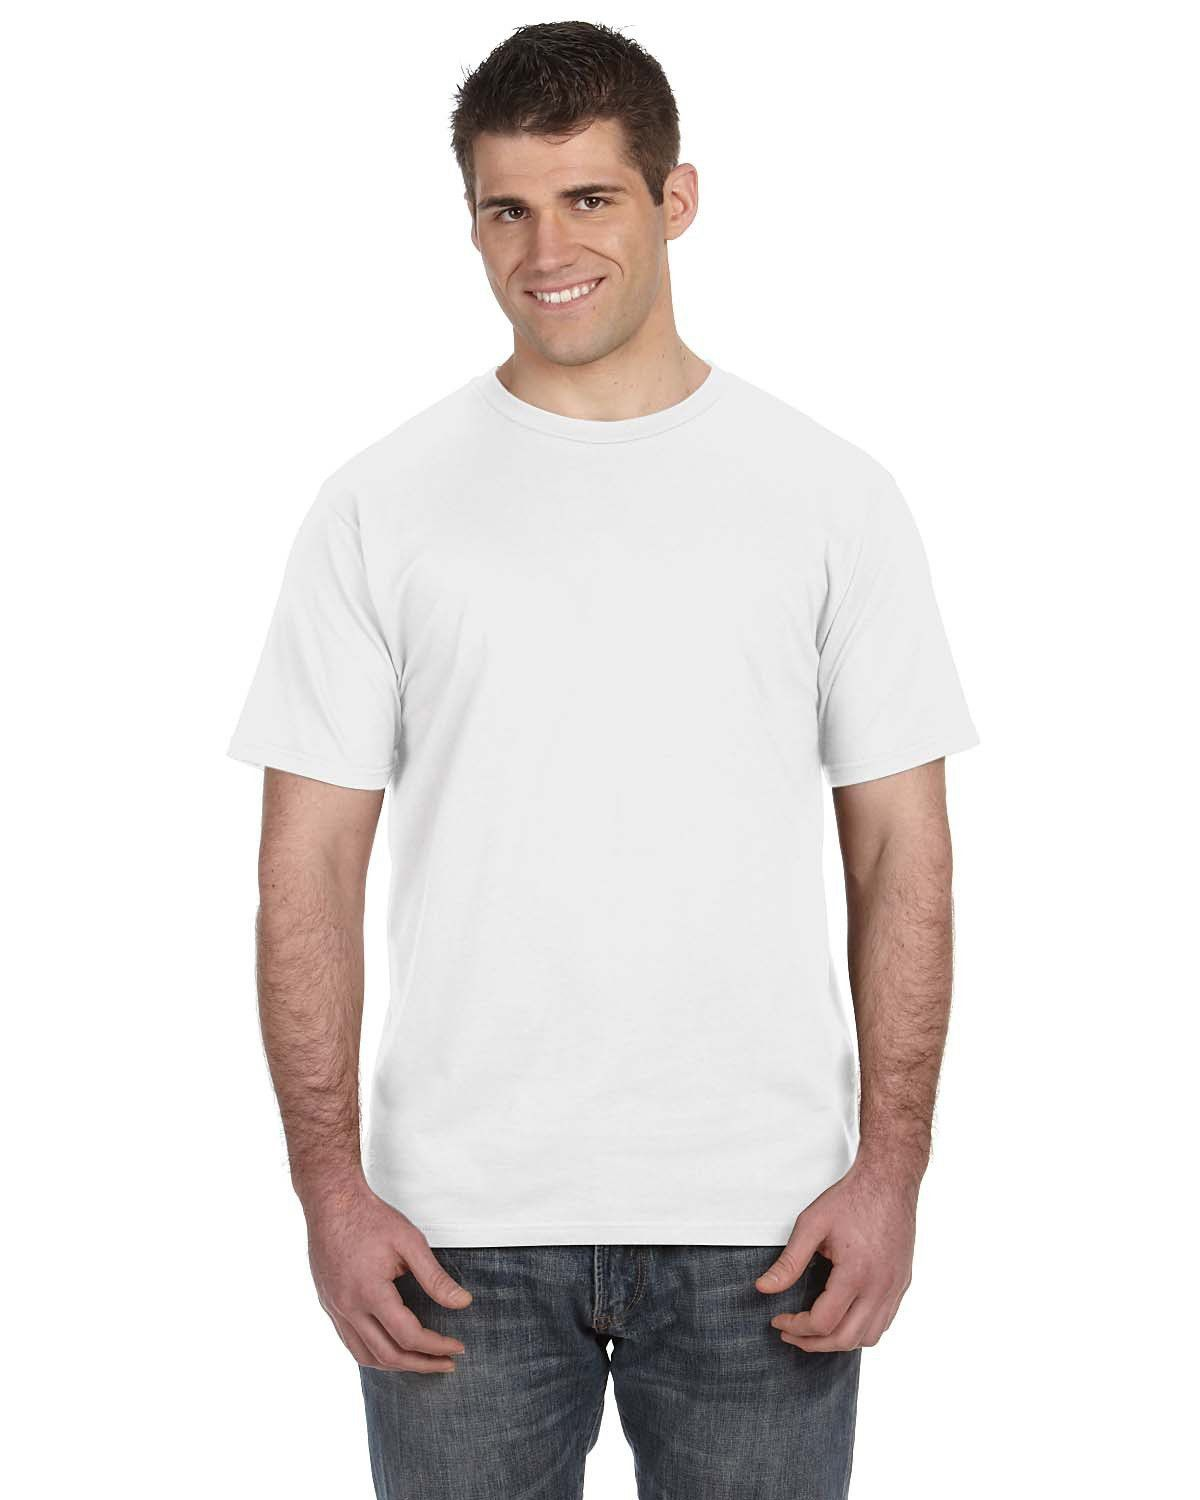 Anvil 980 Men's Ringspun Cotton Fashion-Fit T-Shirt